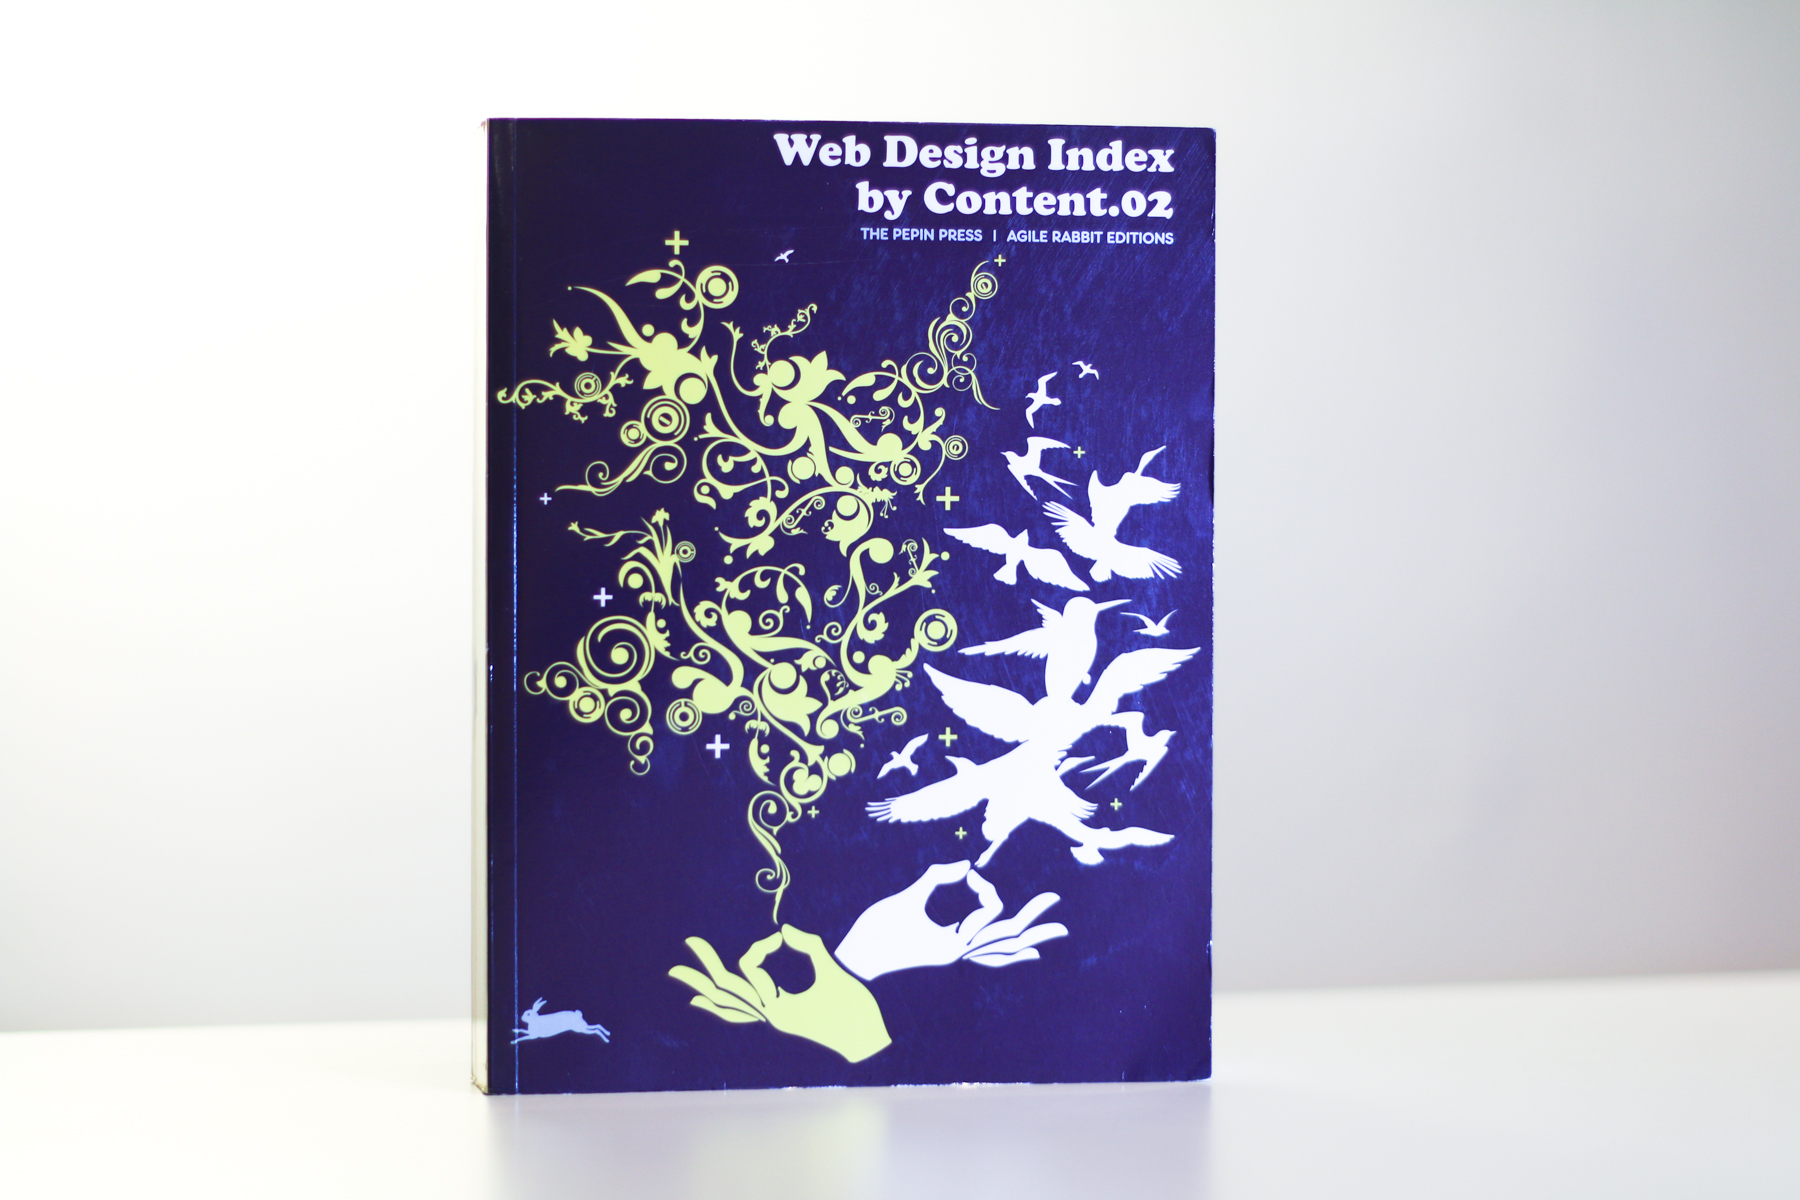 Web Design Index by Content.02